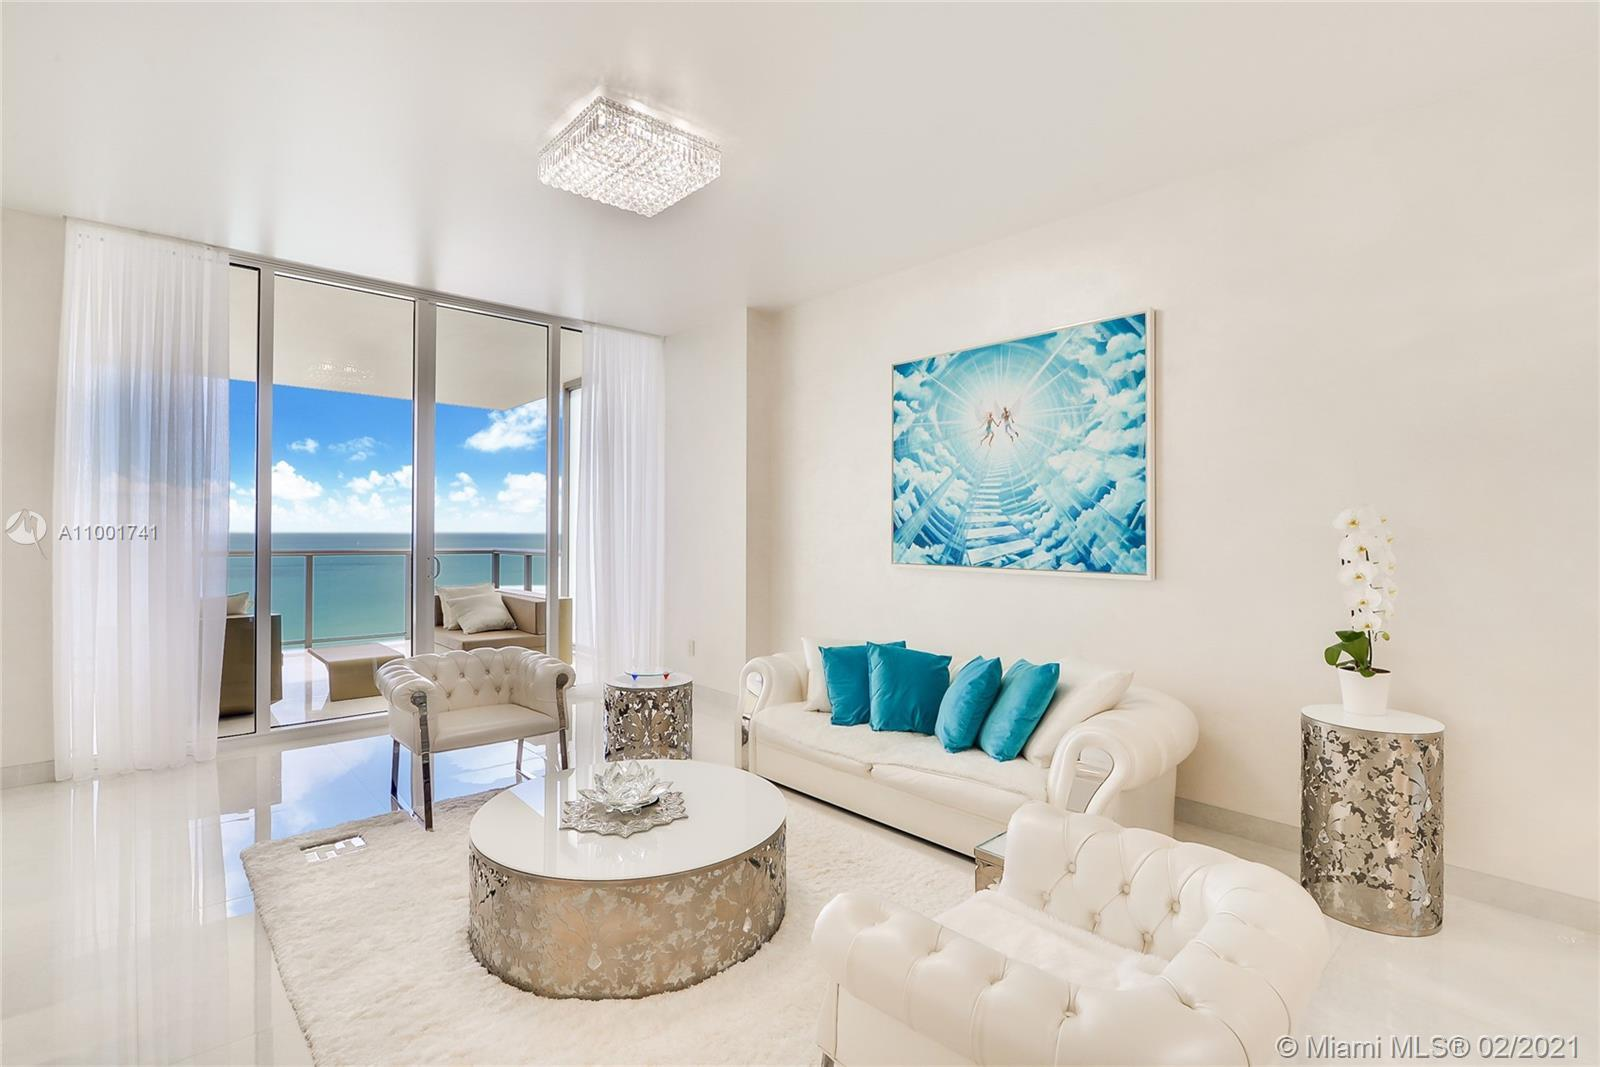 SPECTACULAR LUXURY OCEAN FRONT RESIDENCE WITH PANORAMIC DIRECT MOST DESIRABLE SE OCEAN VIEWS ALL AWA